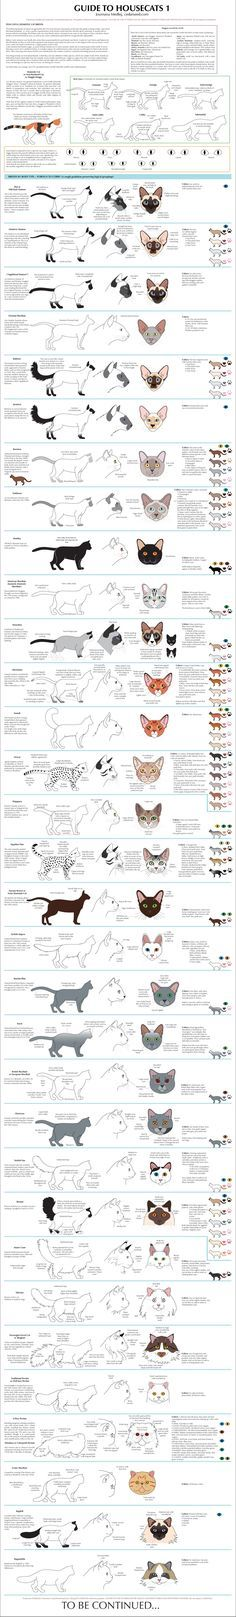 Cat breeds. Interesting, and I will still save feral cats first. I love Persian cats but I won't buy one as they have been completely disfigured and no longer look like a Persian cat; by greedy bored people looking to make a name for themselves with ridiculous standards. The Neblung ( spelling?), Main coon. Many variations of them are running around in nature and I love them all